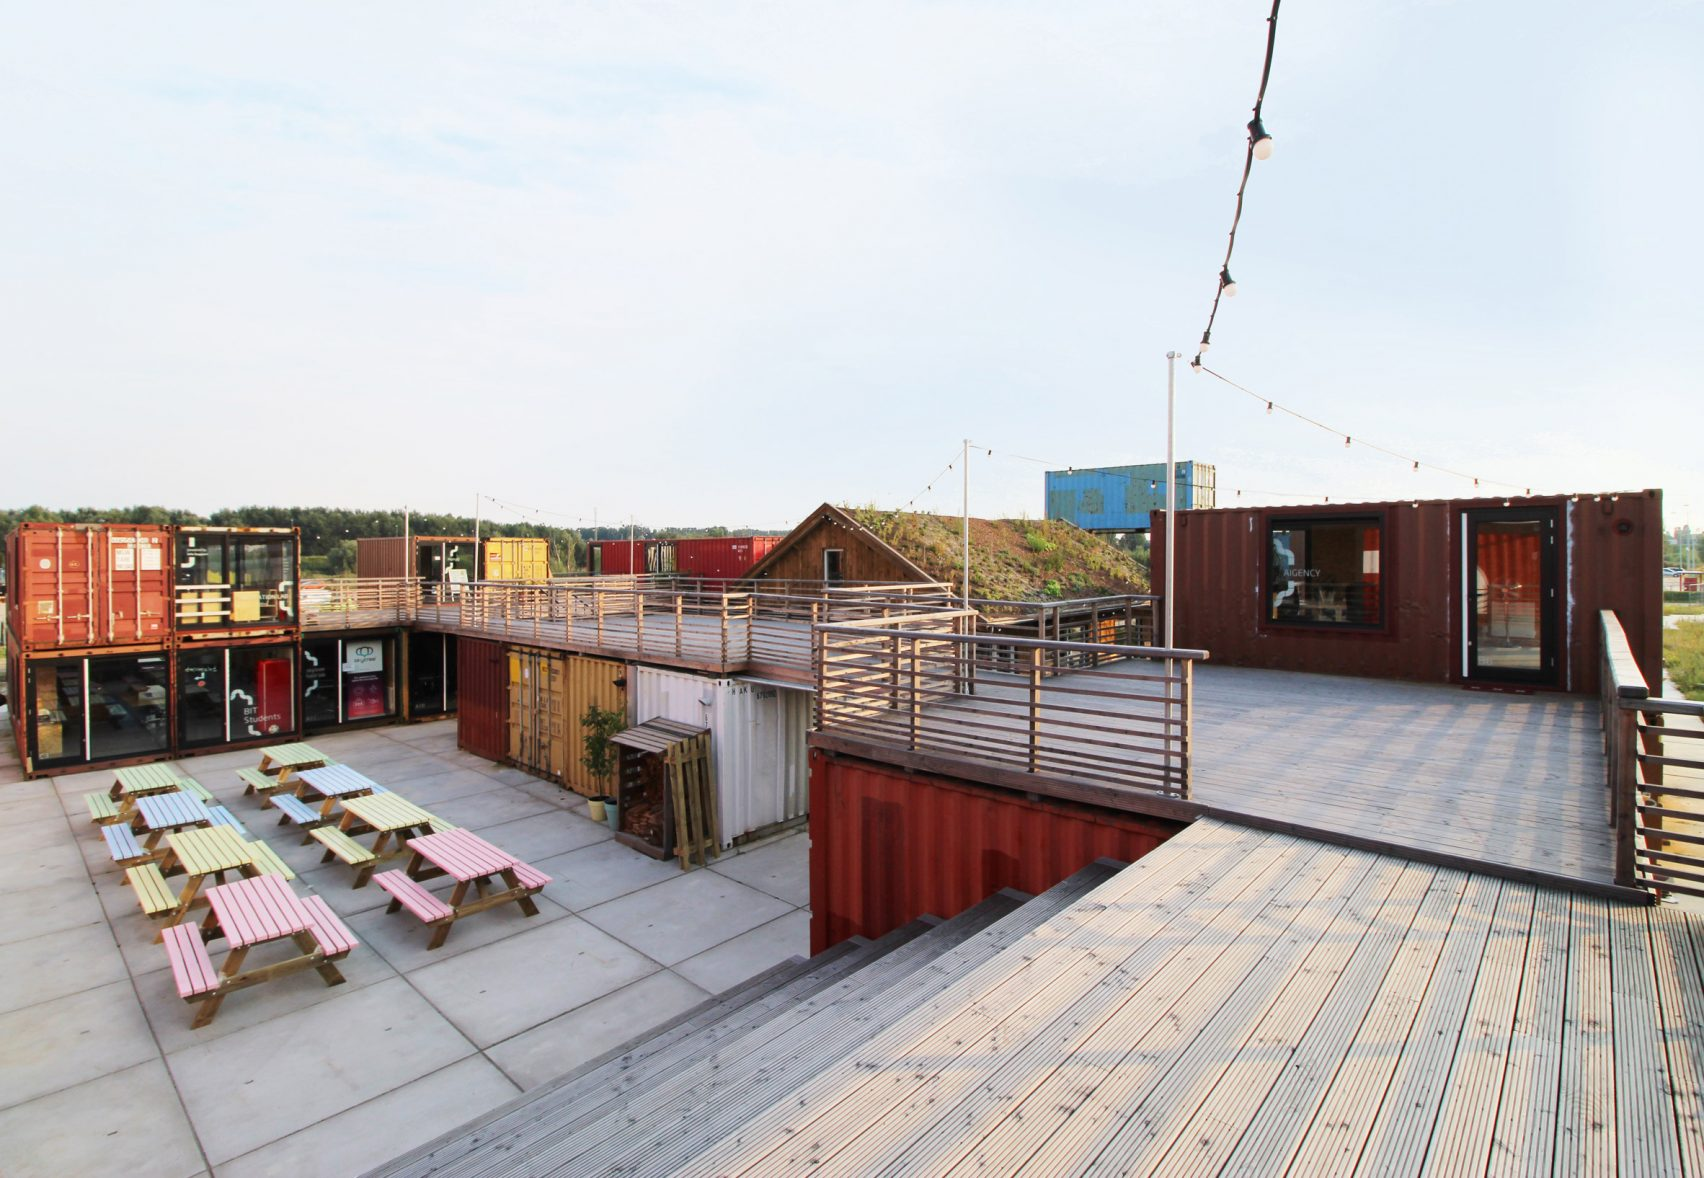 Shipping container coworking space opens in Amsterdam